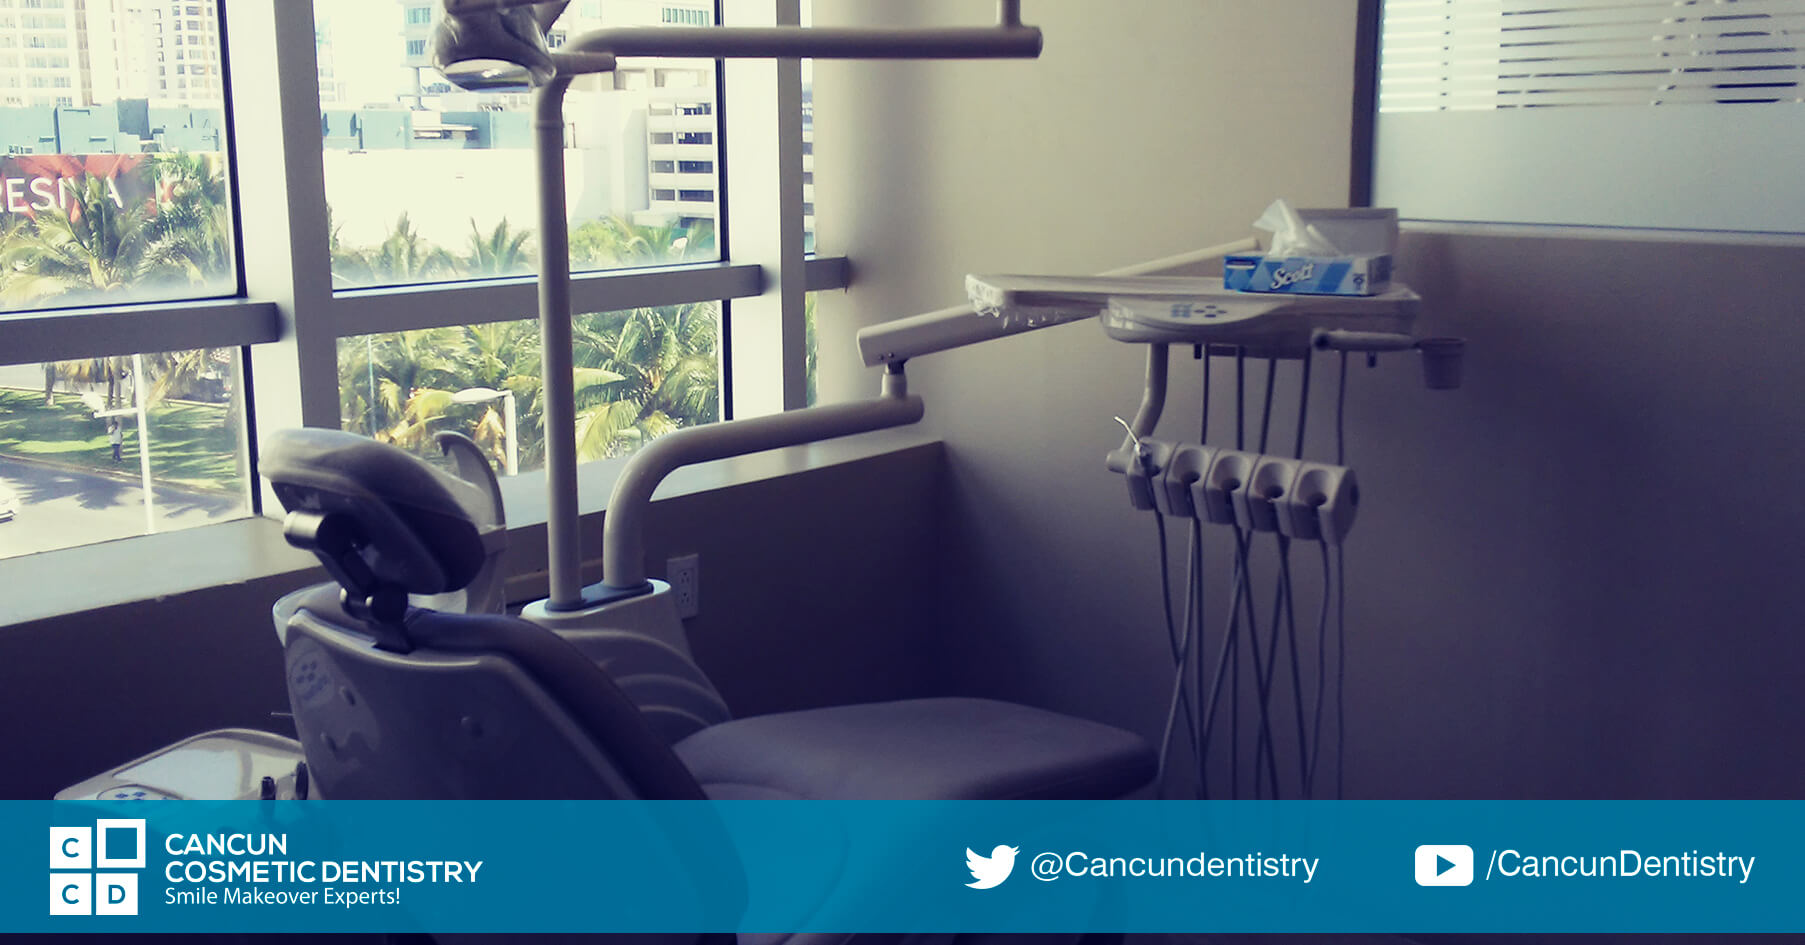 What kind of dental technology will you find in our dental clinic in Cancun?